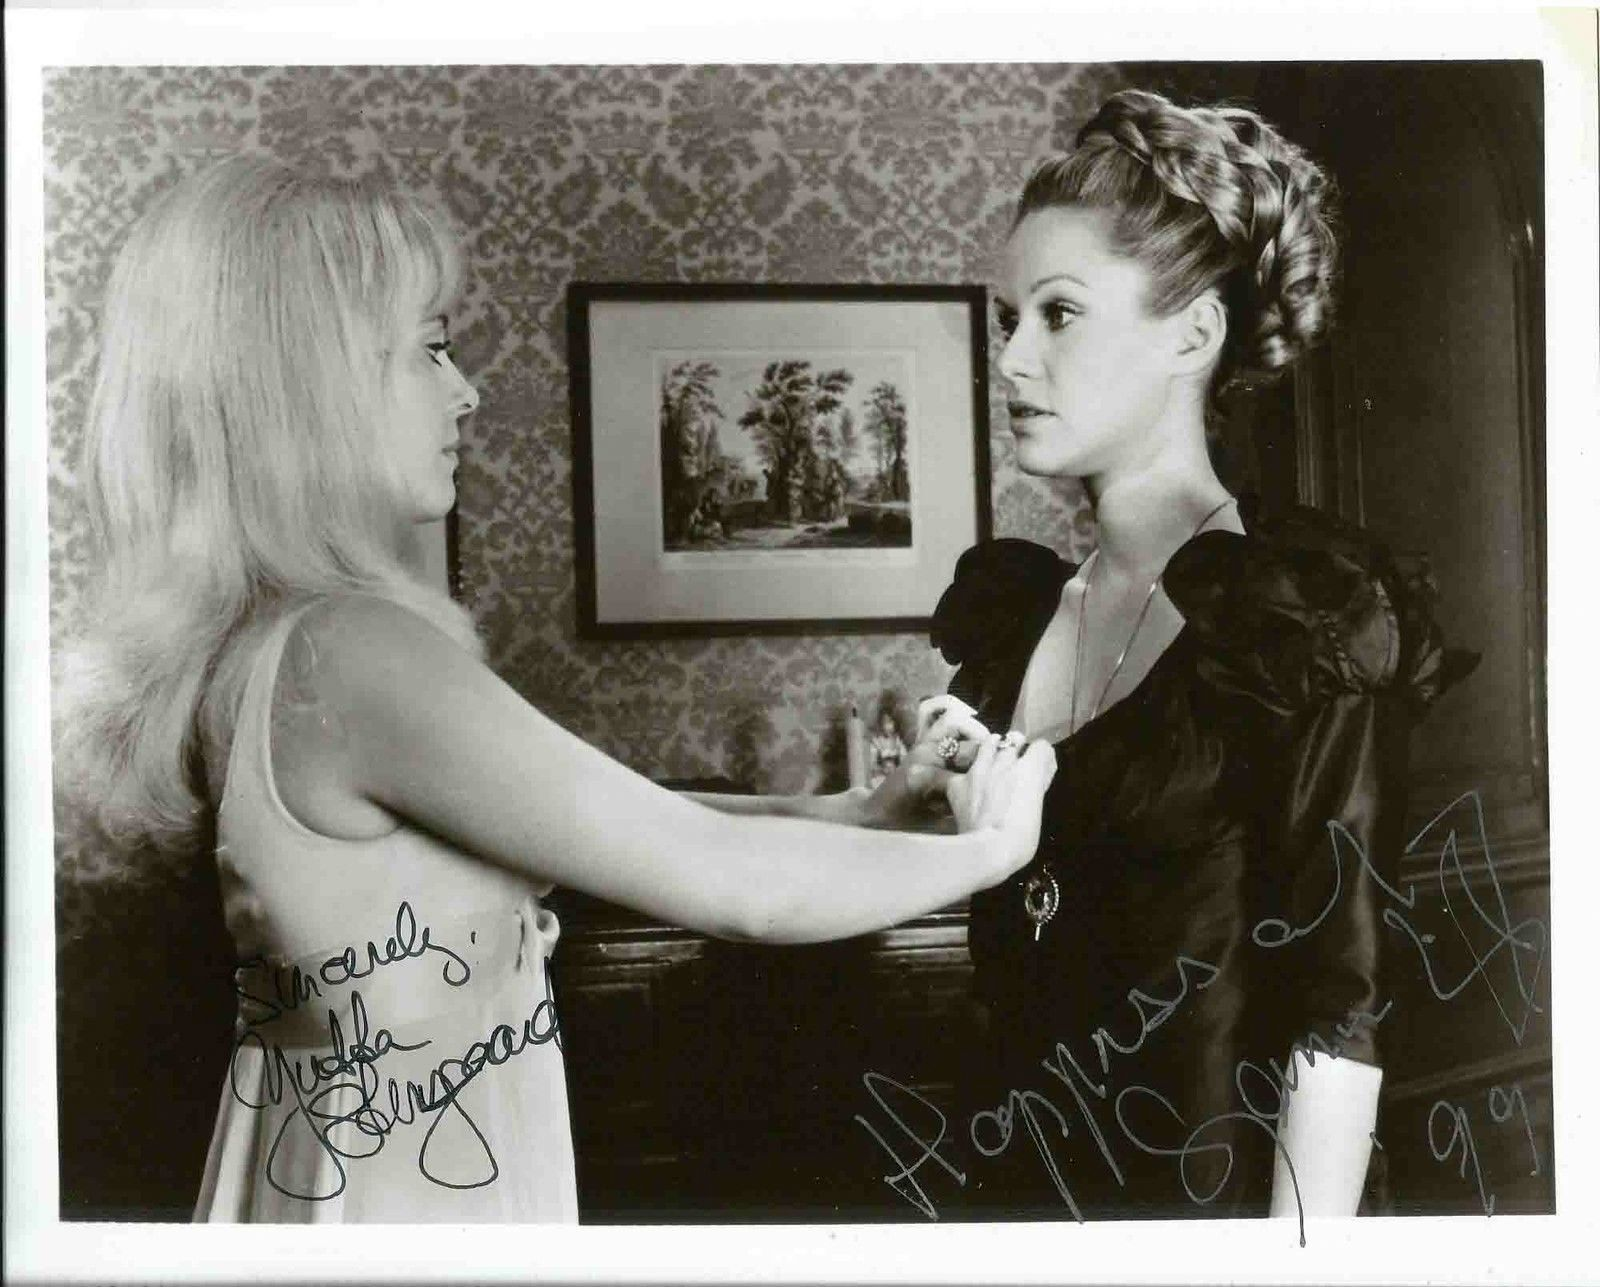 Publicity still for Lust for a Vampire featuring Yutte Stensgaard and Suzannah Leigh